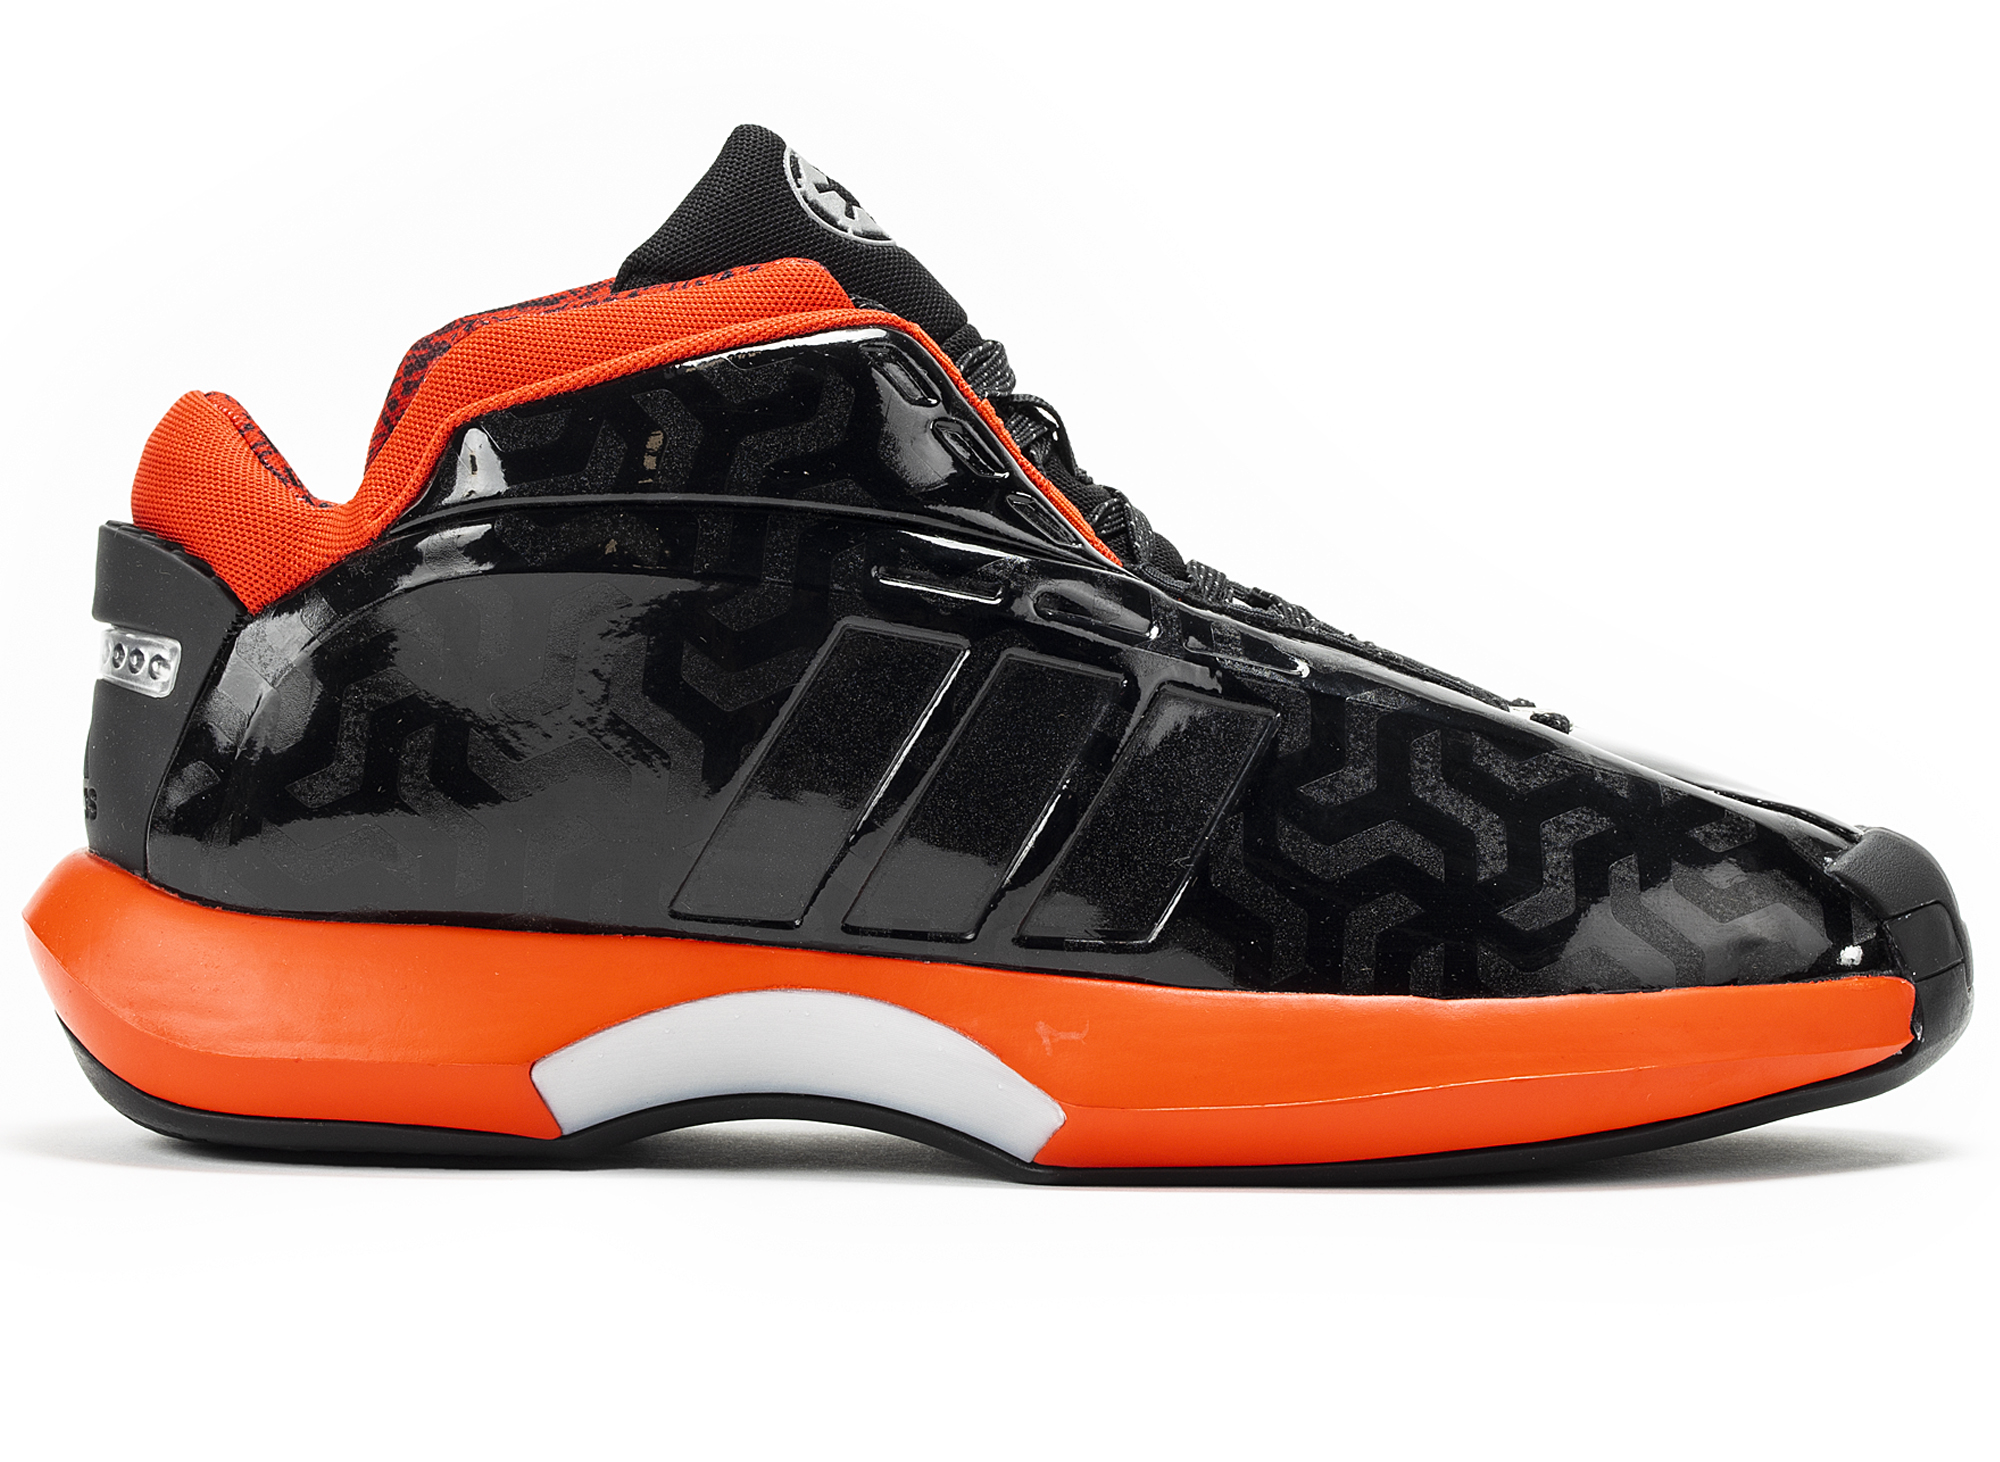 Star Wars x Adidas Crazy 1 'Darth Vader'